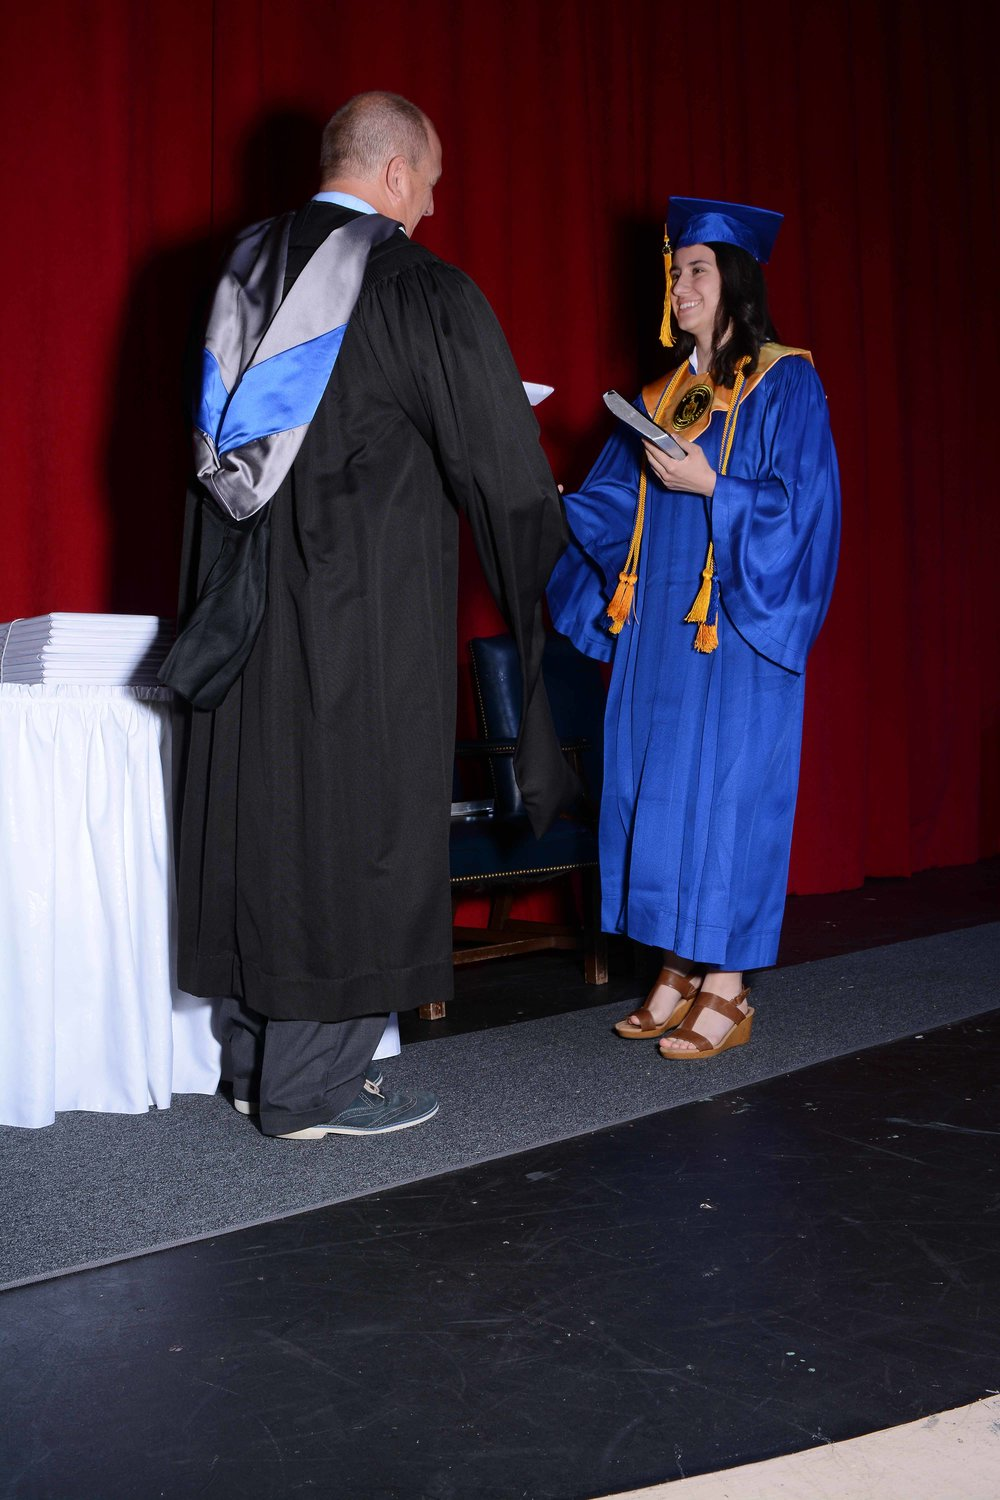 May14 Commencement57.jpg